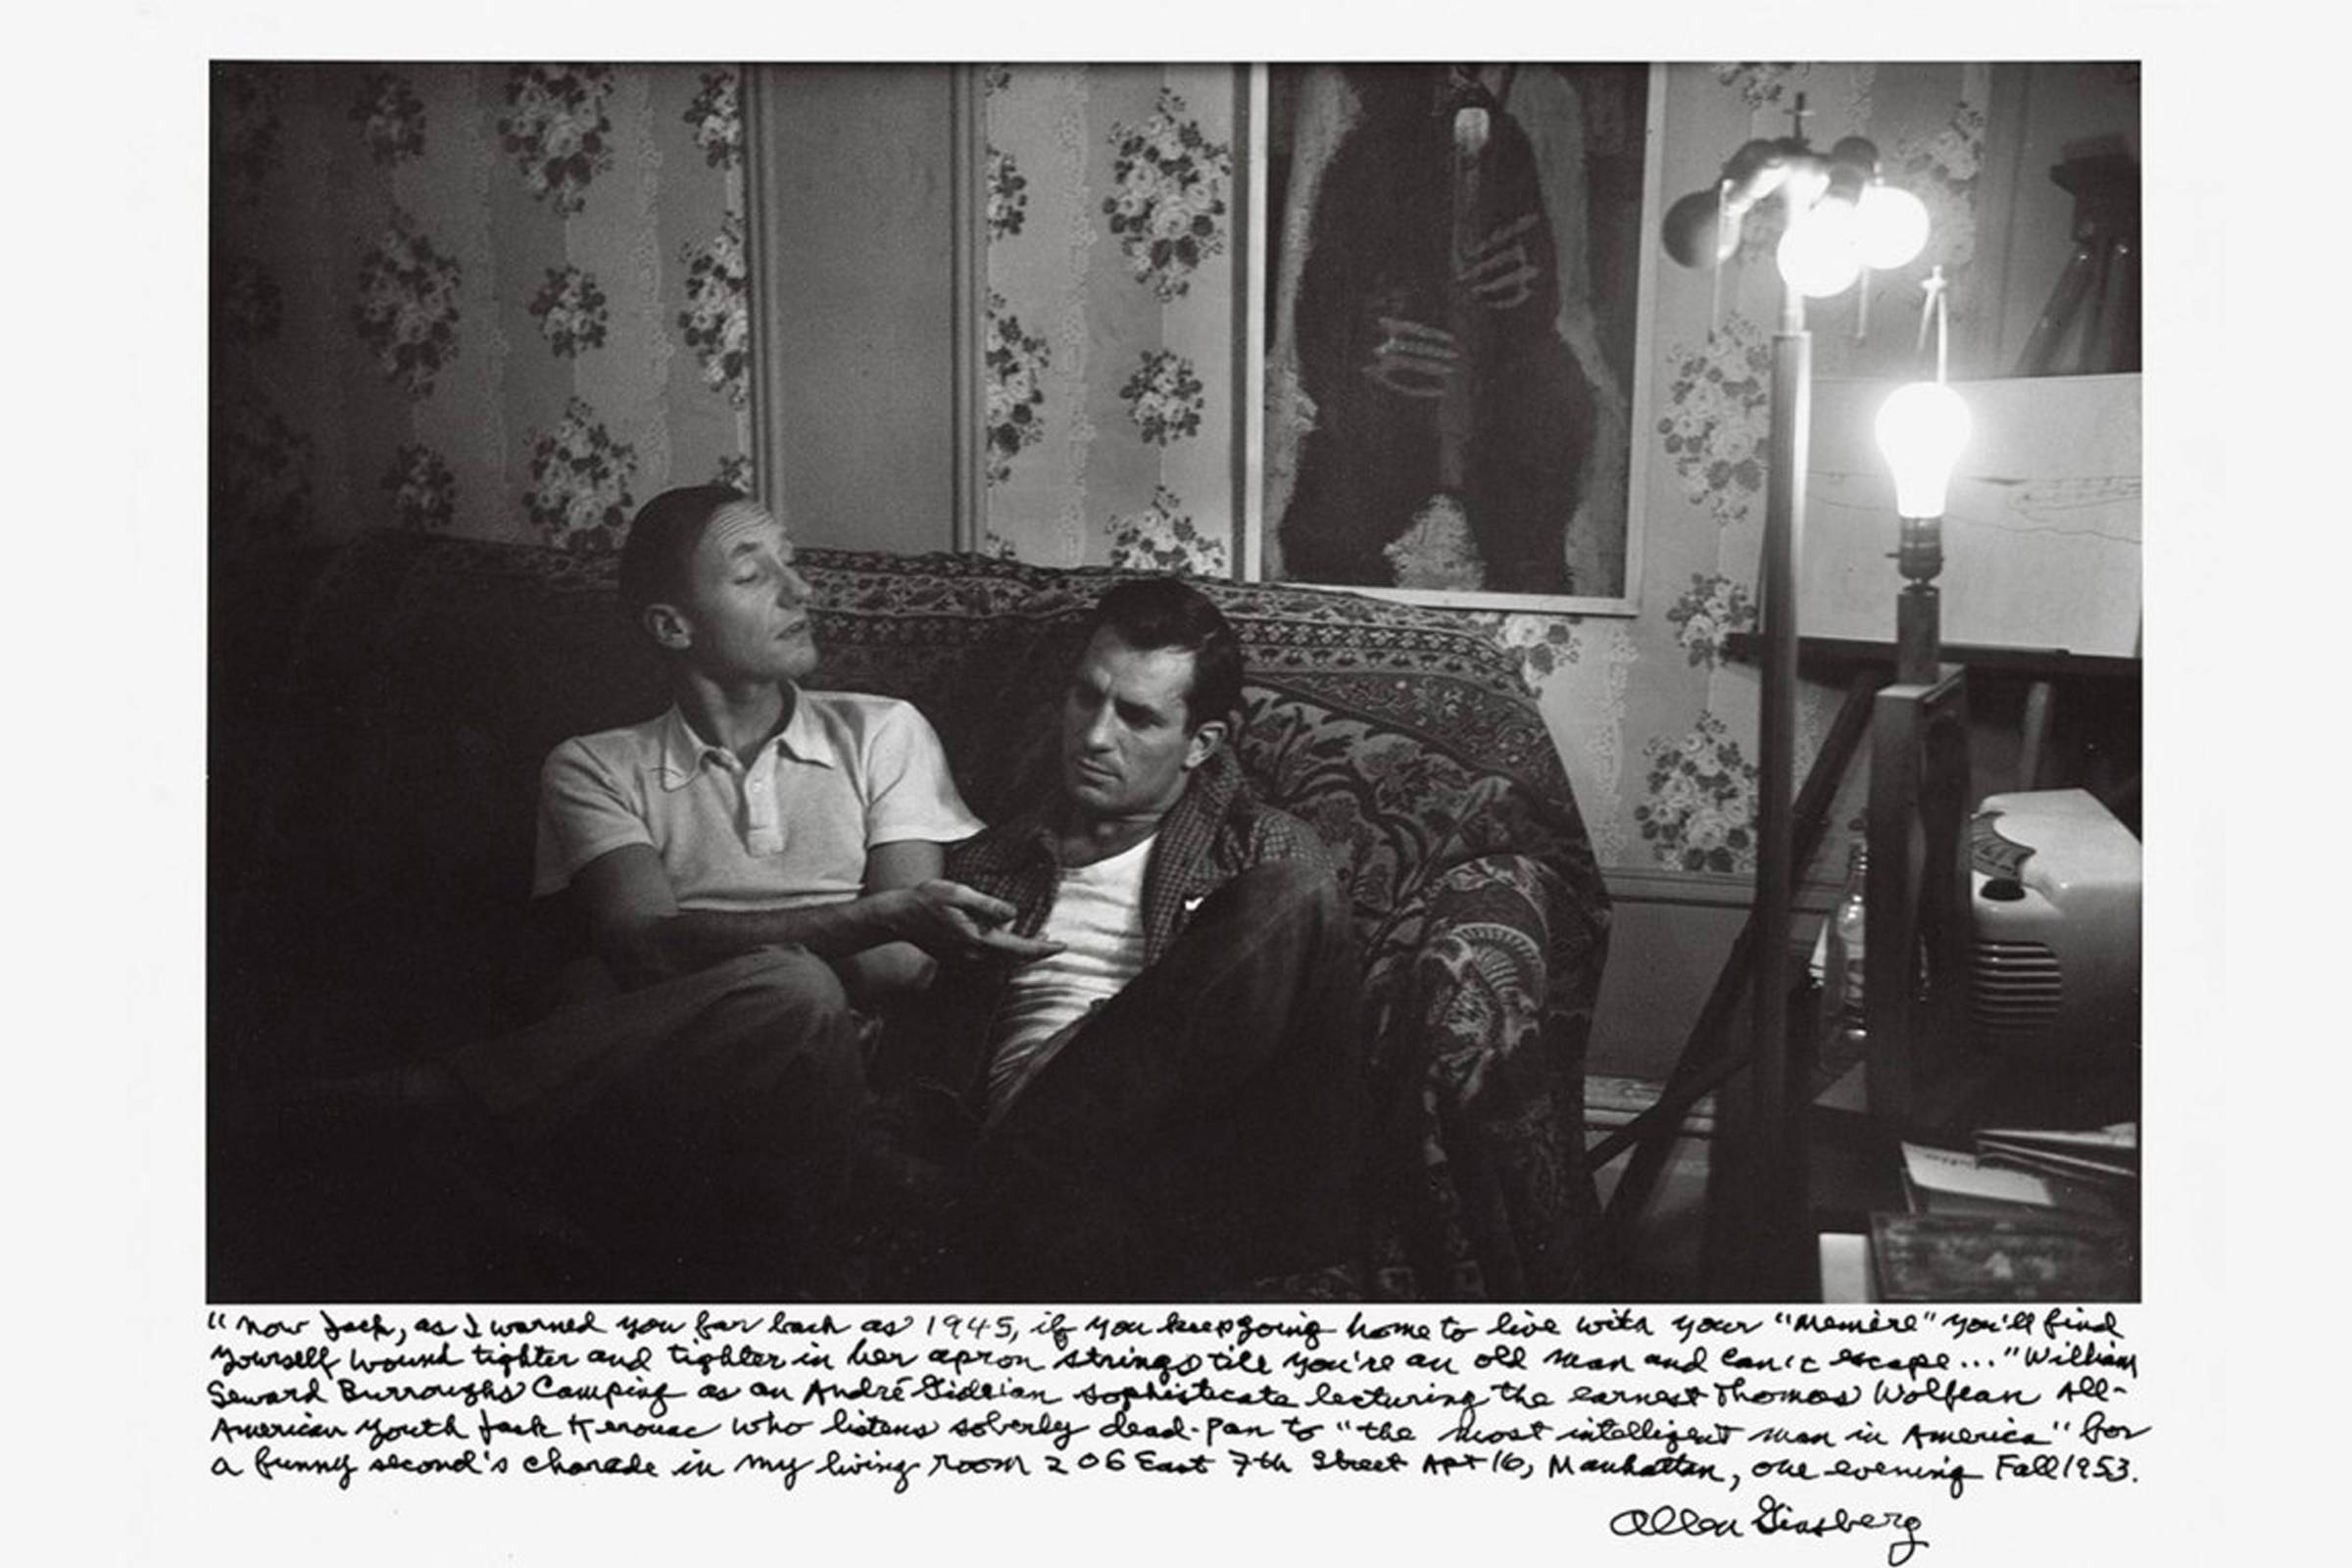 William S. Burroughs (left) and Jack Kerouac in Allen Ginsberg's Manhattan Apartment in 1953. Annotation by Allen Ginsberg